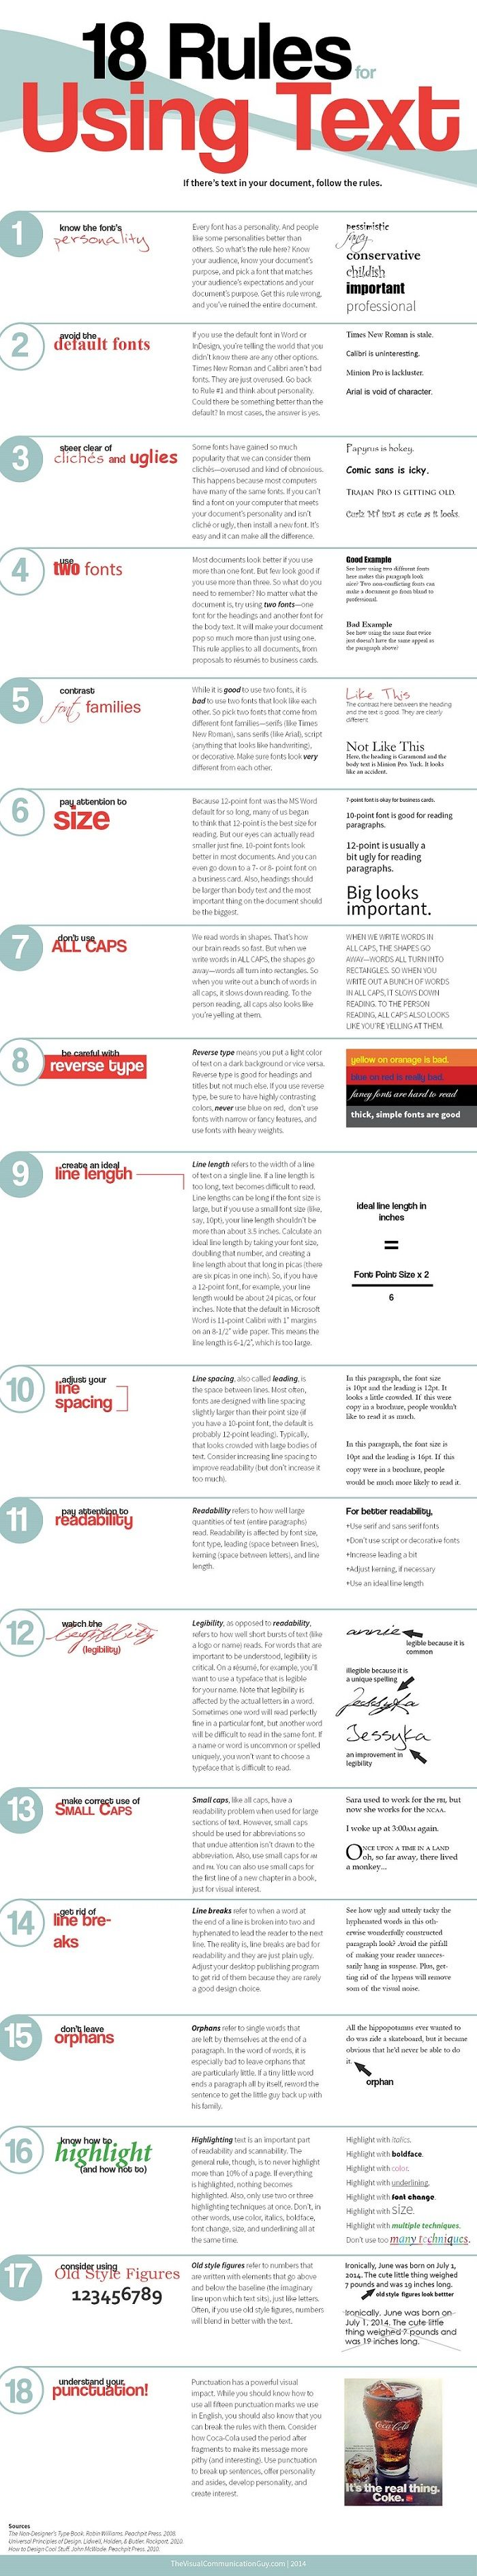 What Are the Design Rules For Text? : INFOGRAPHIC